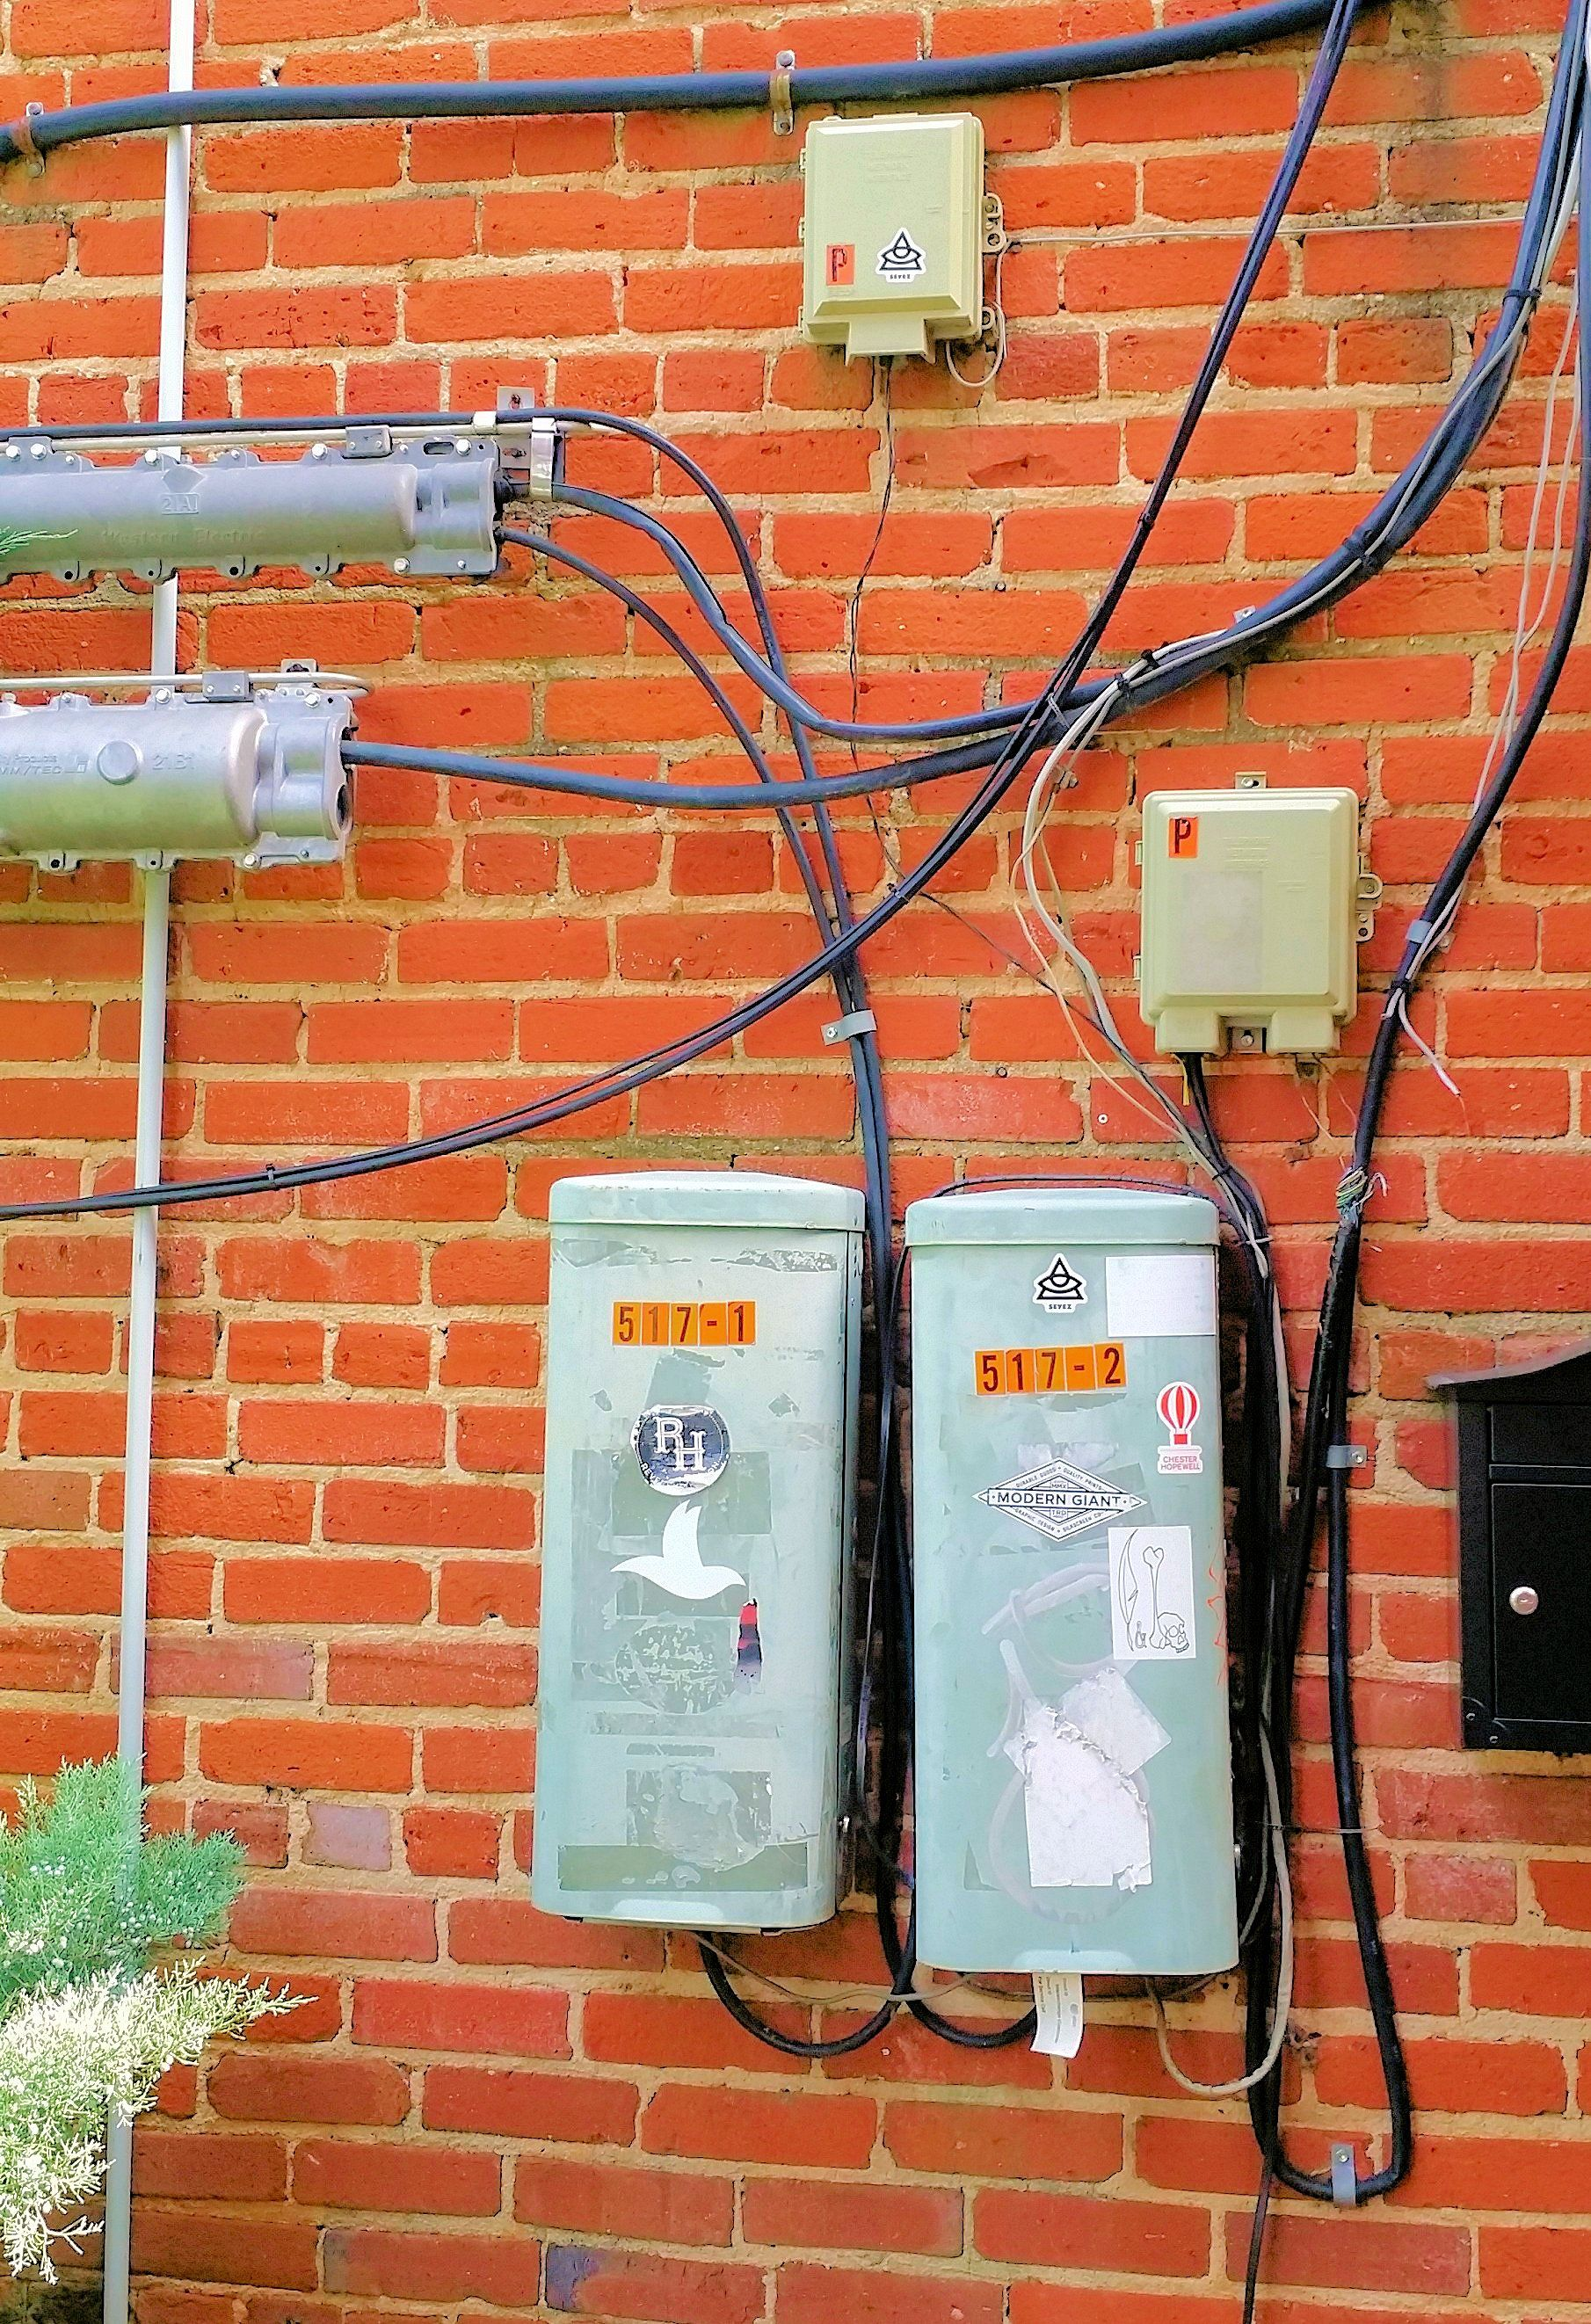 hight resolution of cable terminals splice cases outside network interfaces on side of commercial building 2015